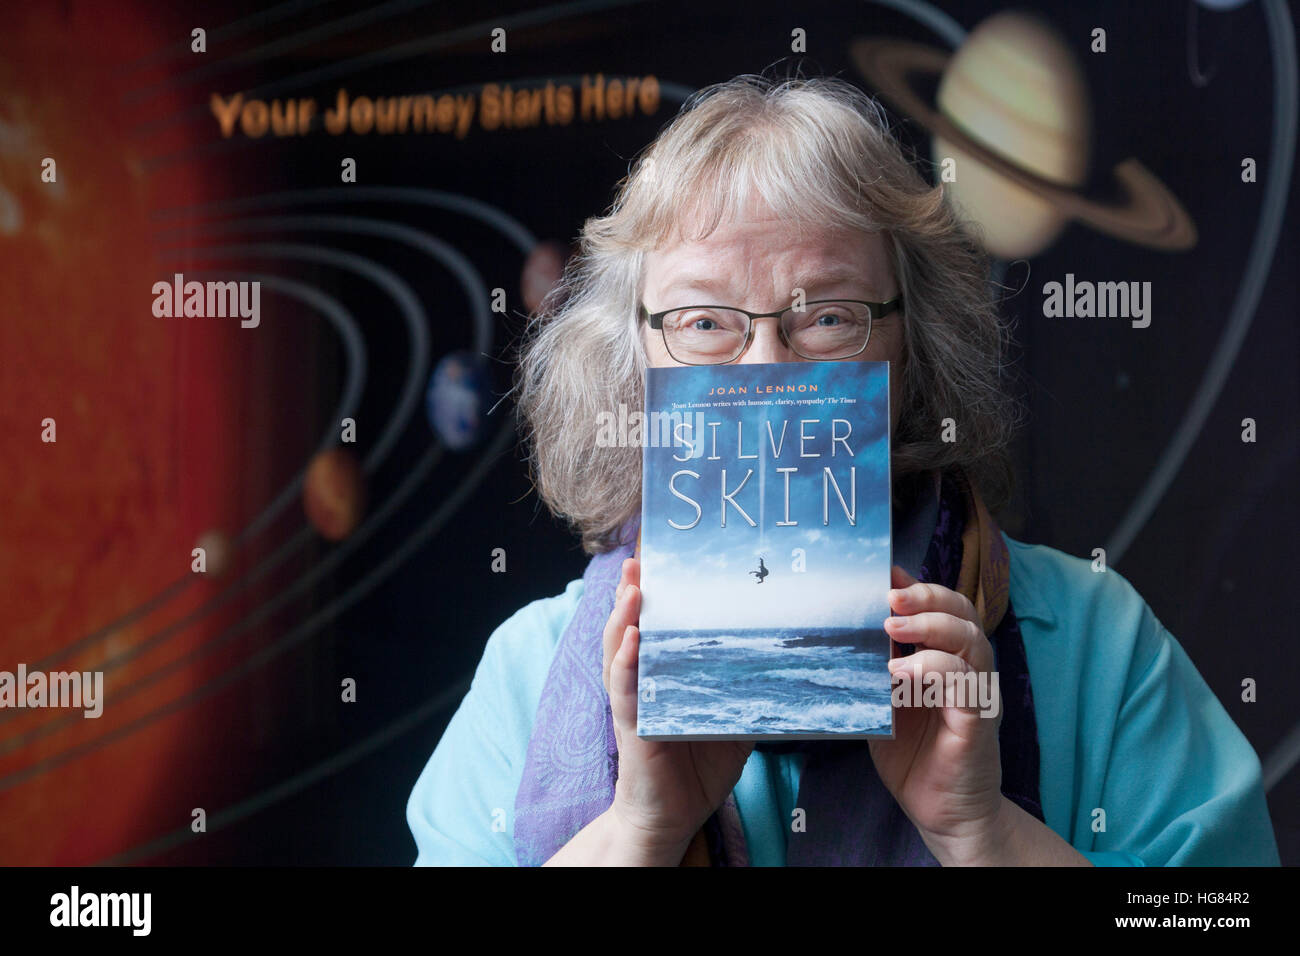 Joan Lennon, children's and young adult sci-fi and fantasy author. - Stock Image